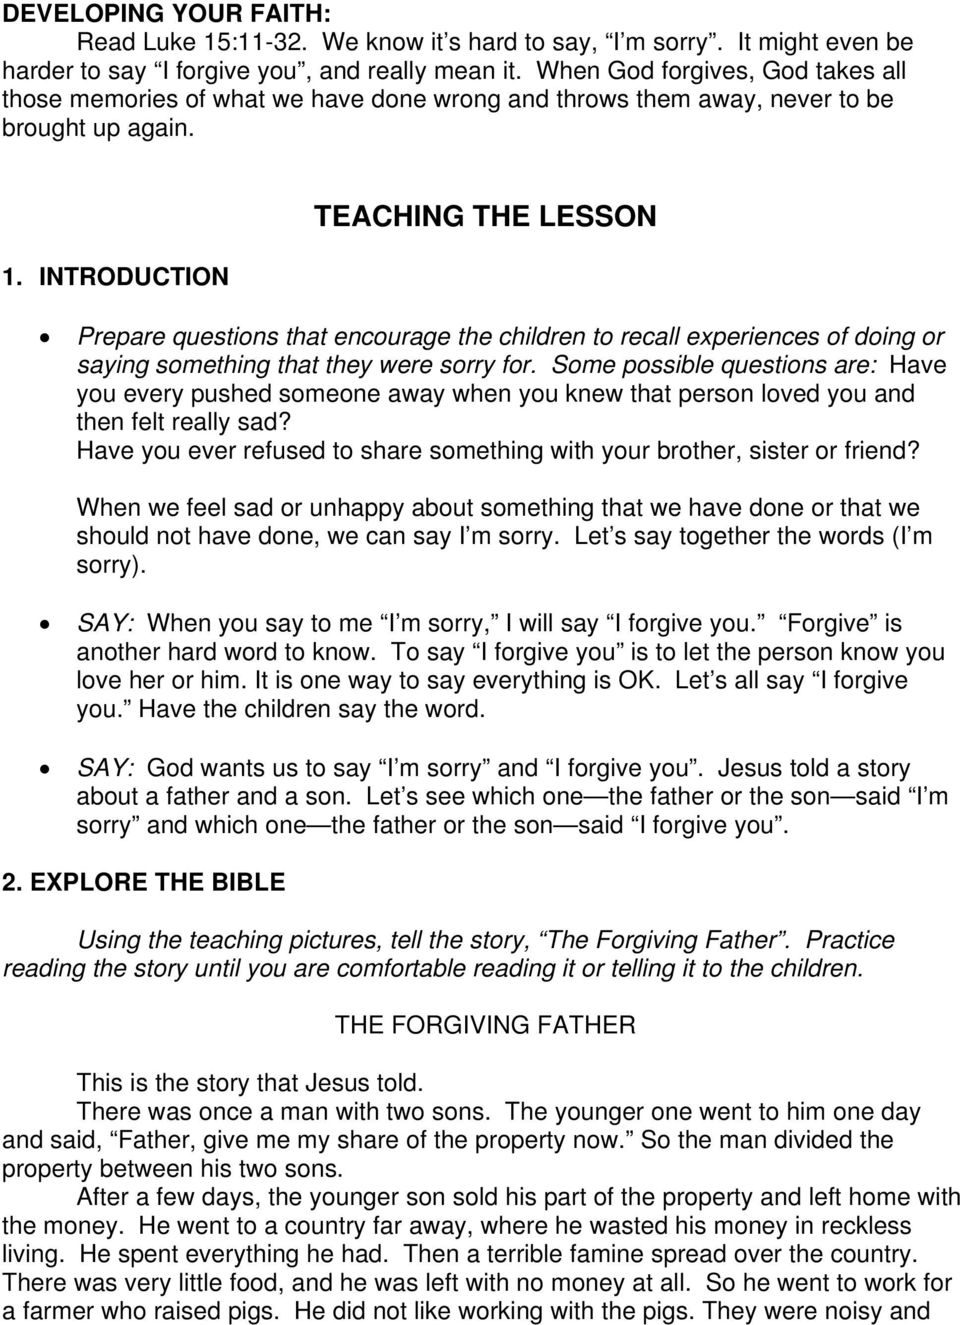 INTRODUCTION TEACHING THE LESSON Prepare questions that encourage the children to recall experiences of doing or saying something that they were sorry for.